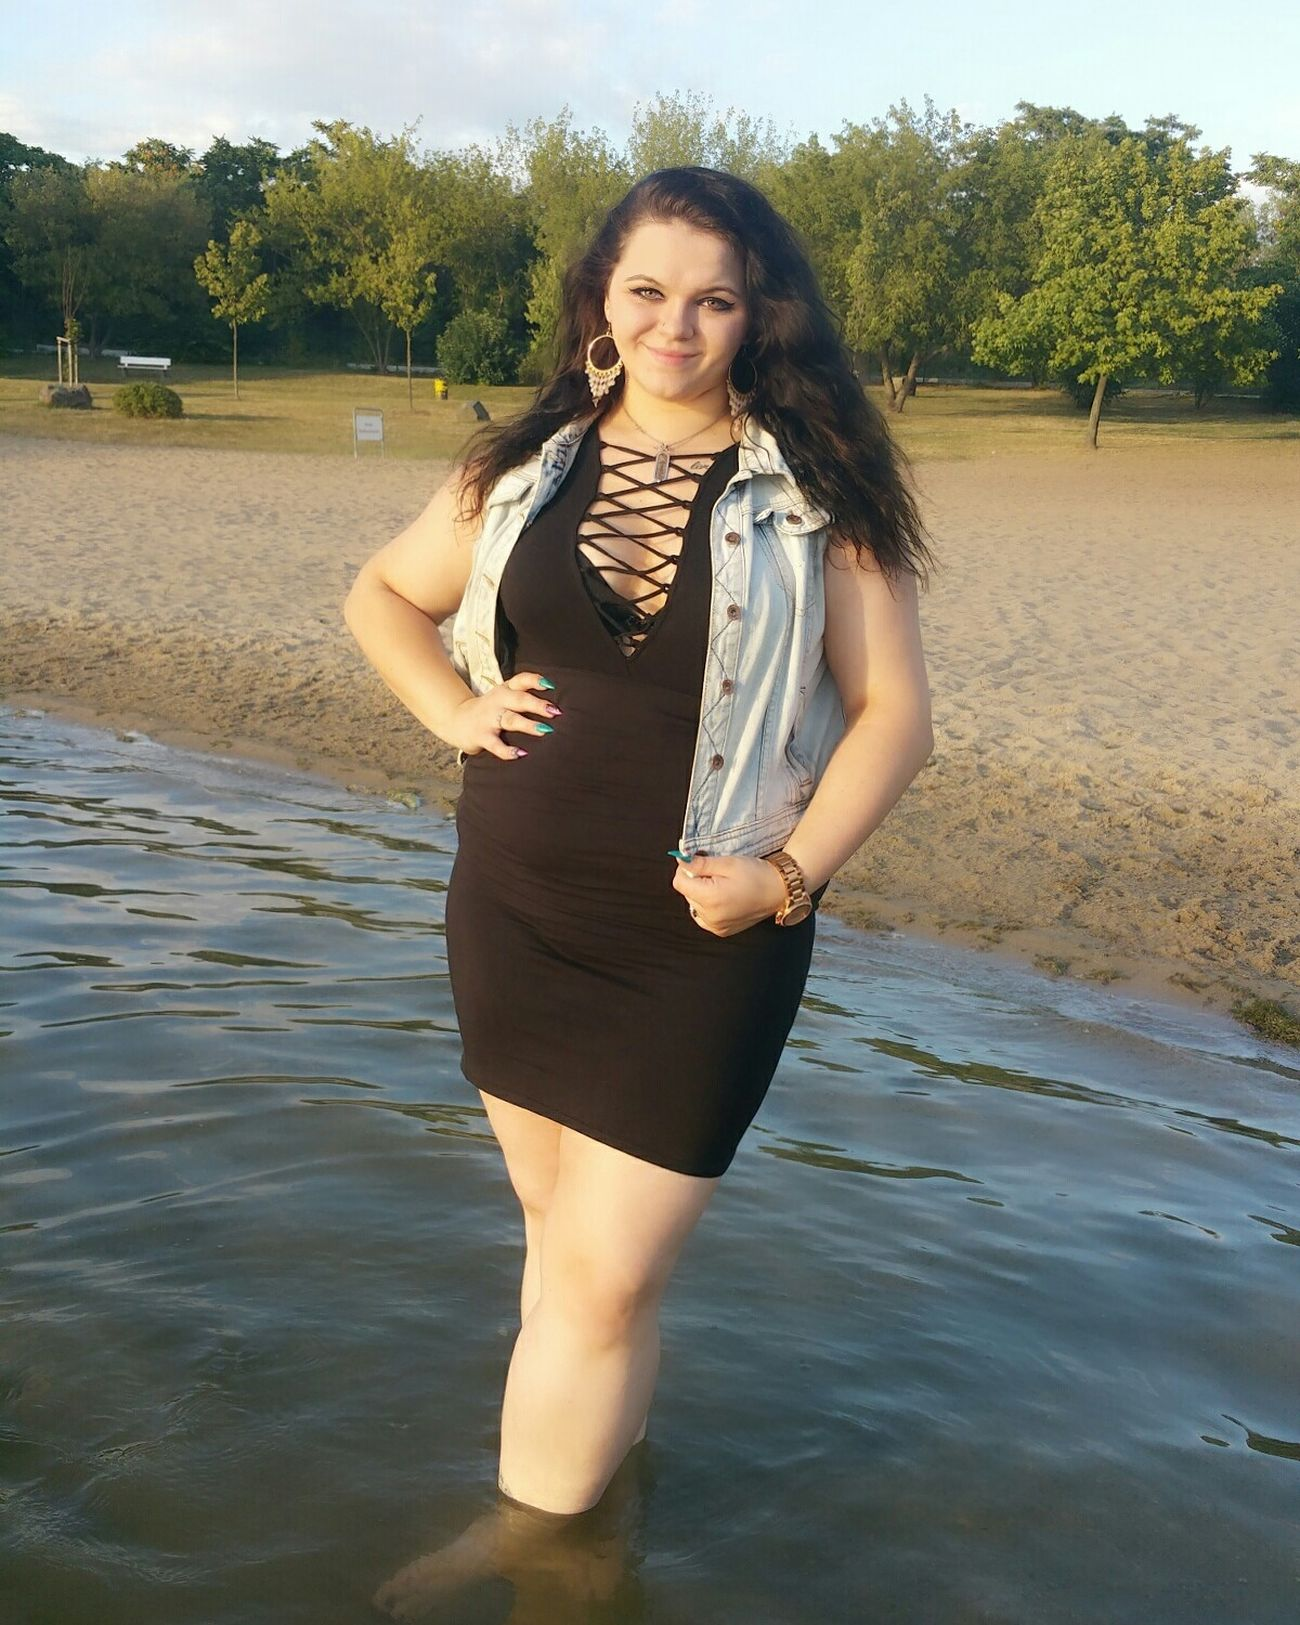 Boobiiiees! Outfit #OOTD Faces Of EyeEm Curvy Girls Do It Better 😘 Curvyisthenewsexy New Outfit:) Fashion&love&beauty Plussizecommunity Plus Size ModelOutfit OOTD Cute As Hell Curves ♥ *;Sunny☀ Cute♡ Cutenessoverload Beautiful ♥ Plussizebeauty Love ♥ Student Life Summer ☀ Sexyselfie xoxo. ♡♡♡